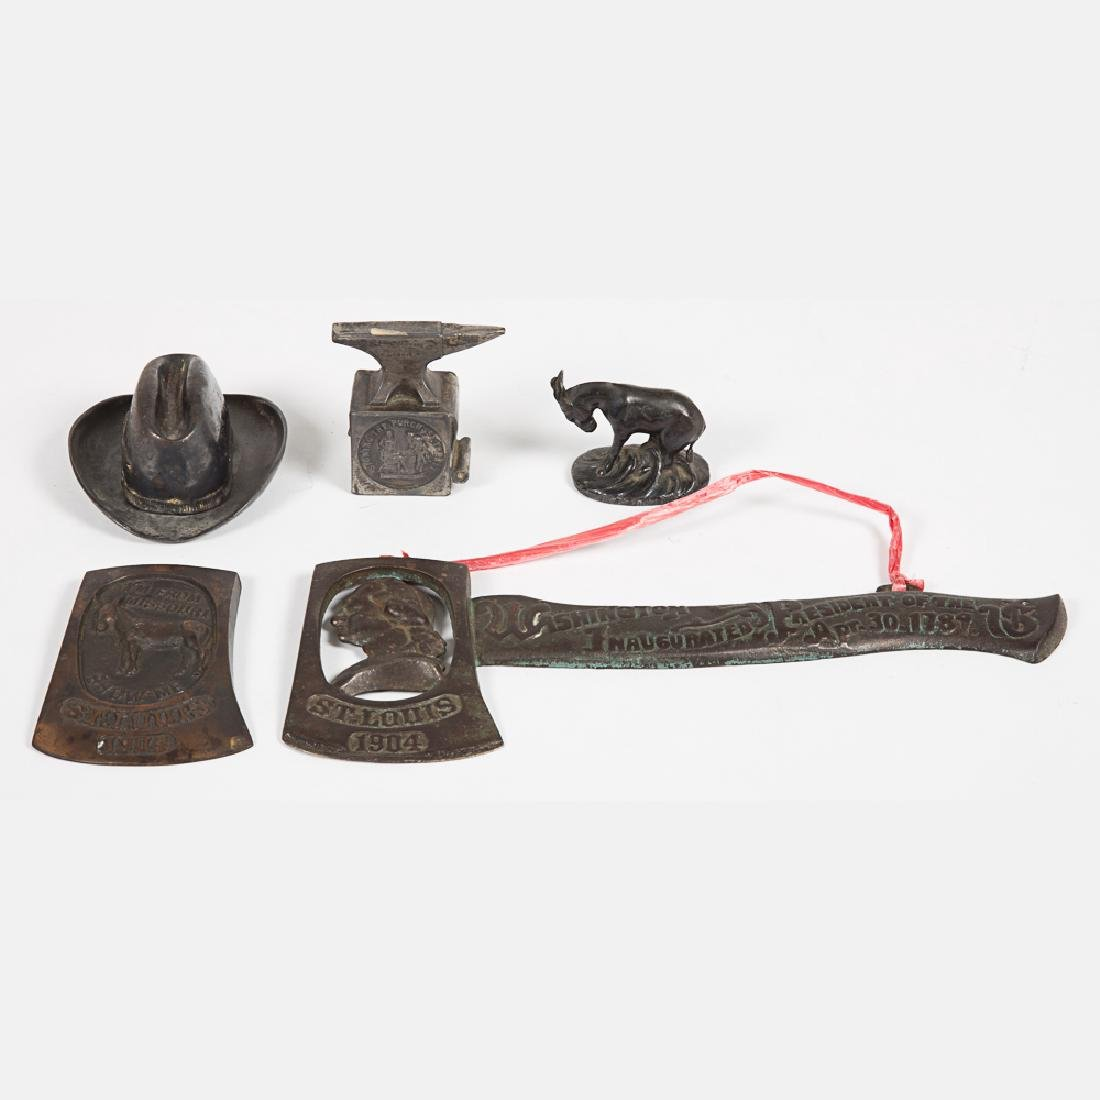 A Miscellaneous Collection of Five Iron and Cast Metal